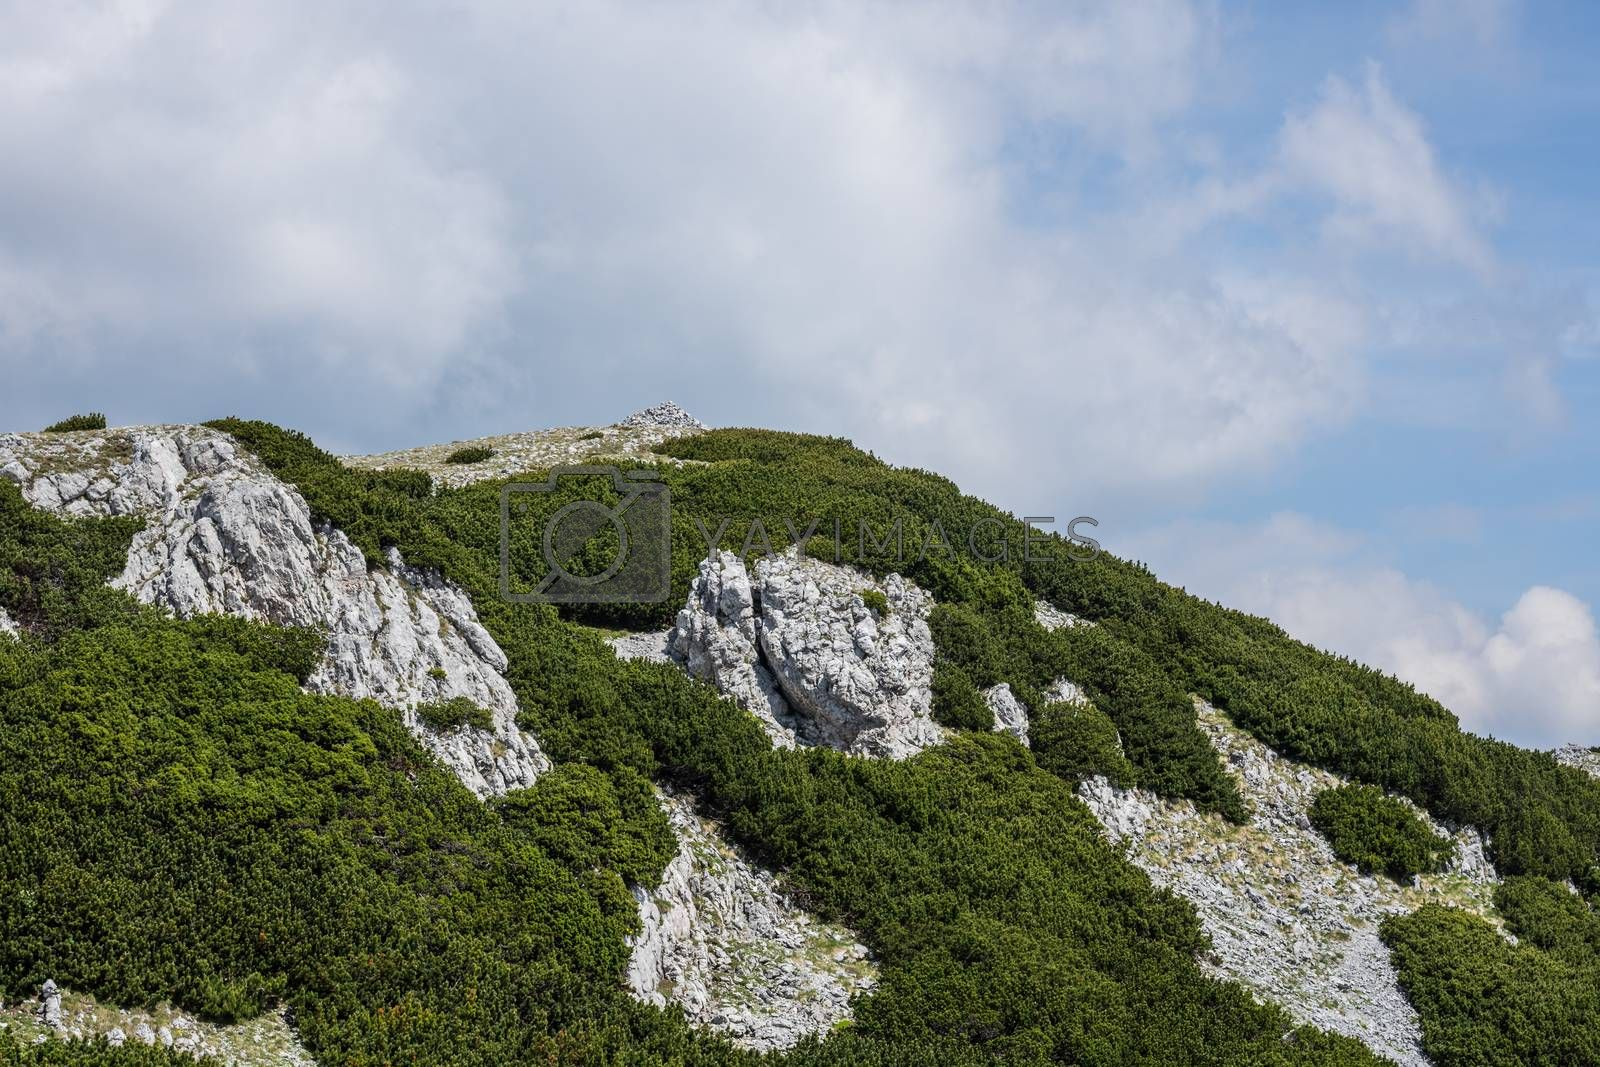 Green mountain with rocks and sky with clouds